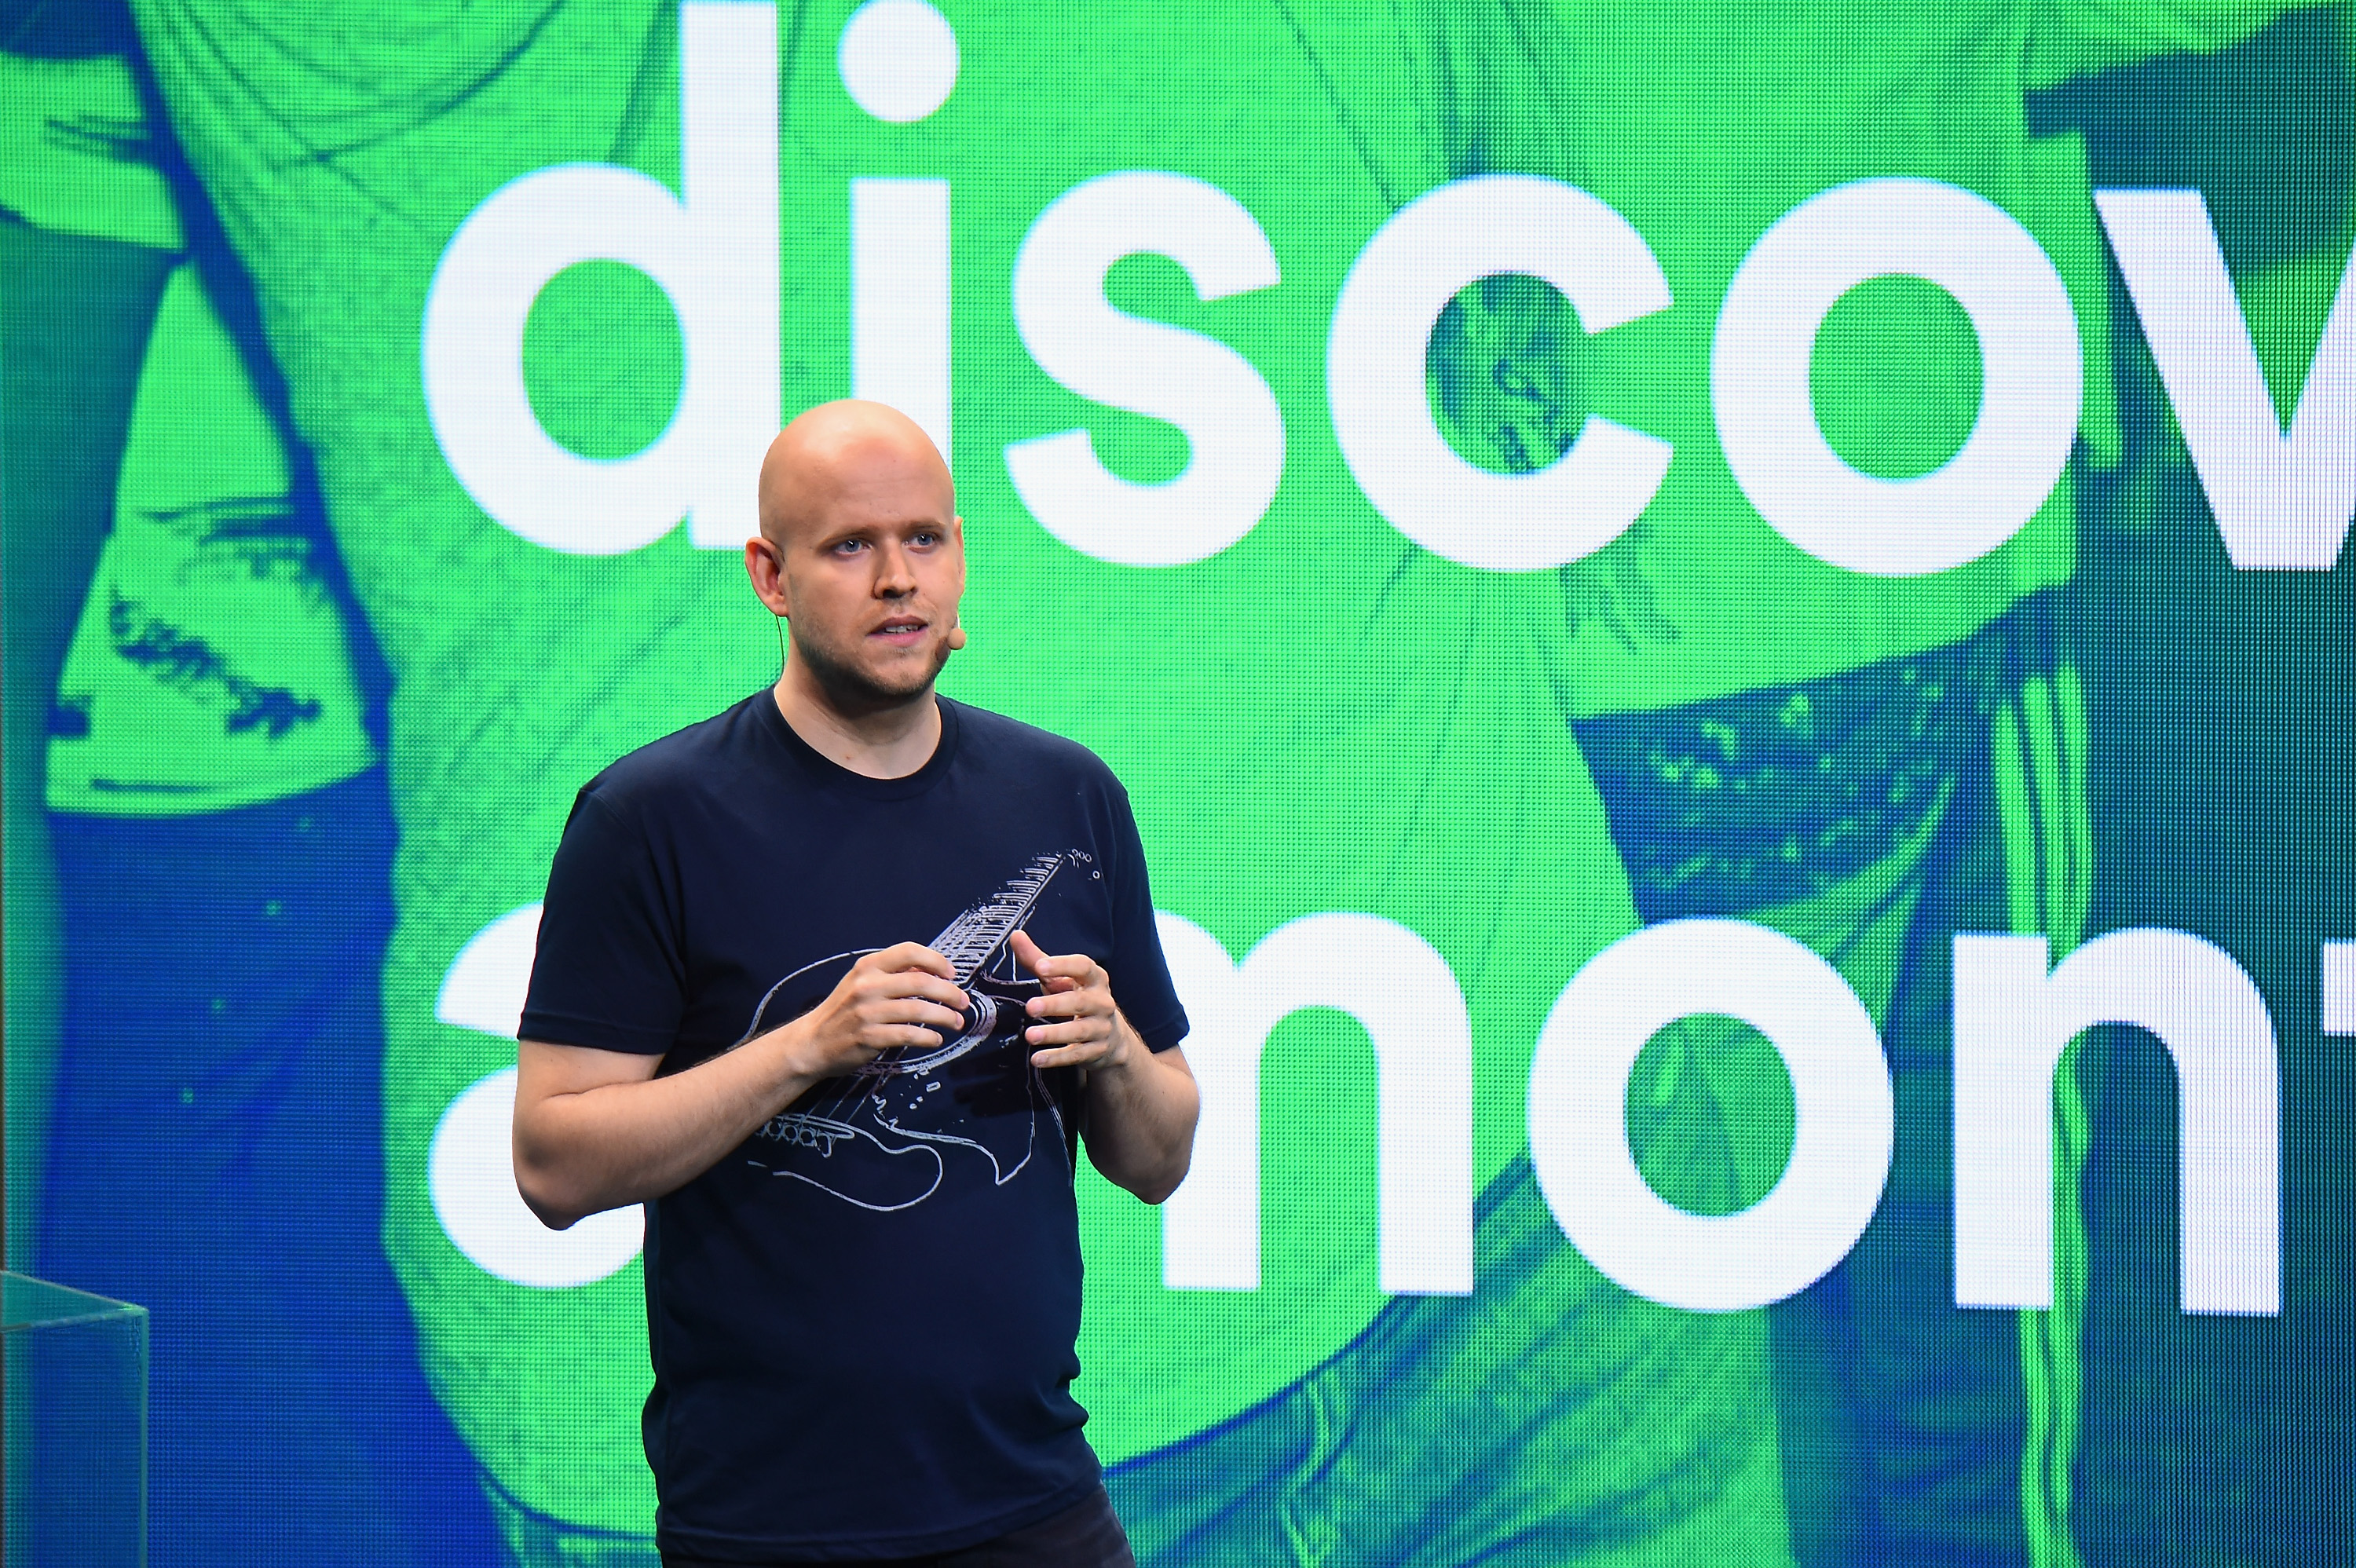 Spotifys unusual ipo sparks investor uncertainty but shares close spotify daniel ek biocorpaavc Image collections